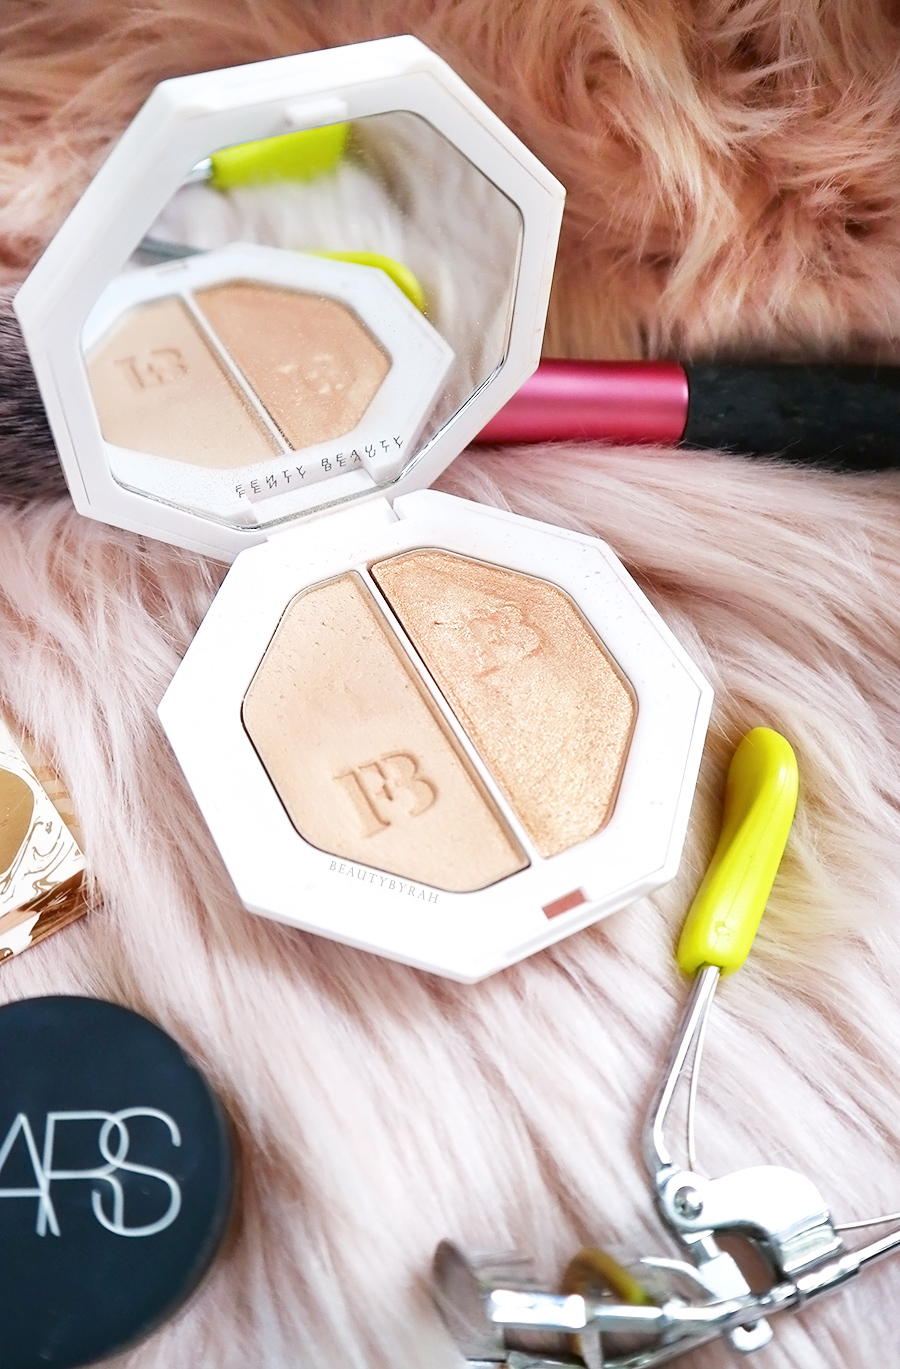 Fenty Beauty Hustla Baby/Mean Money Kilawatt Highlighter Review